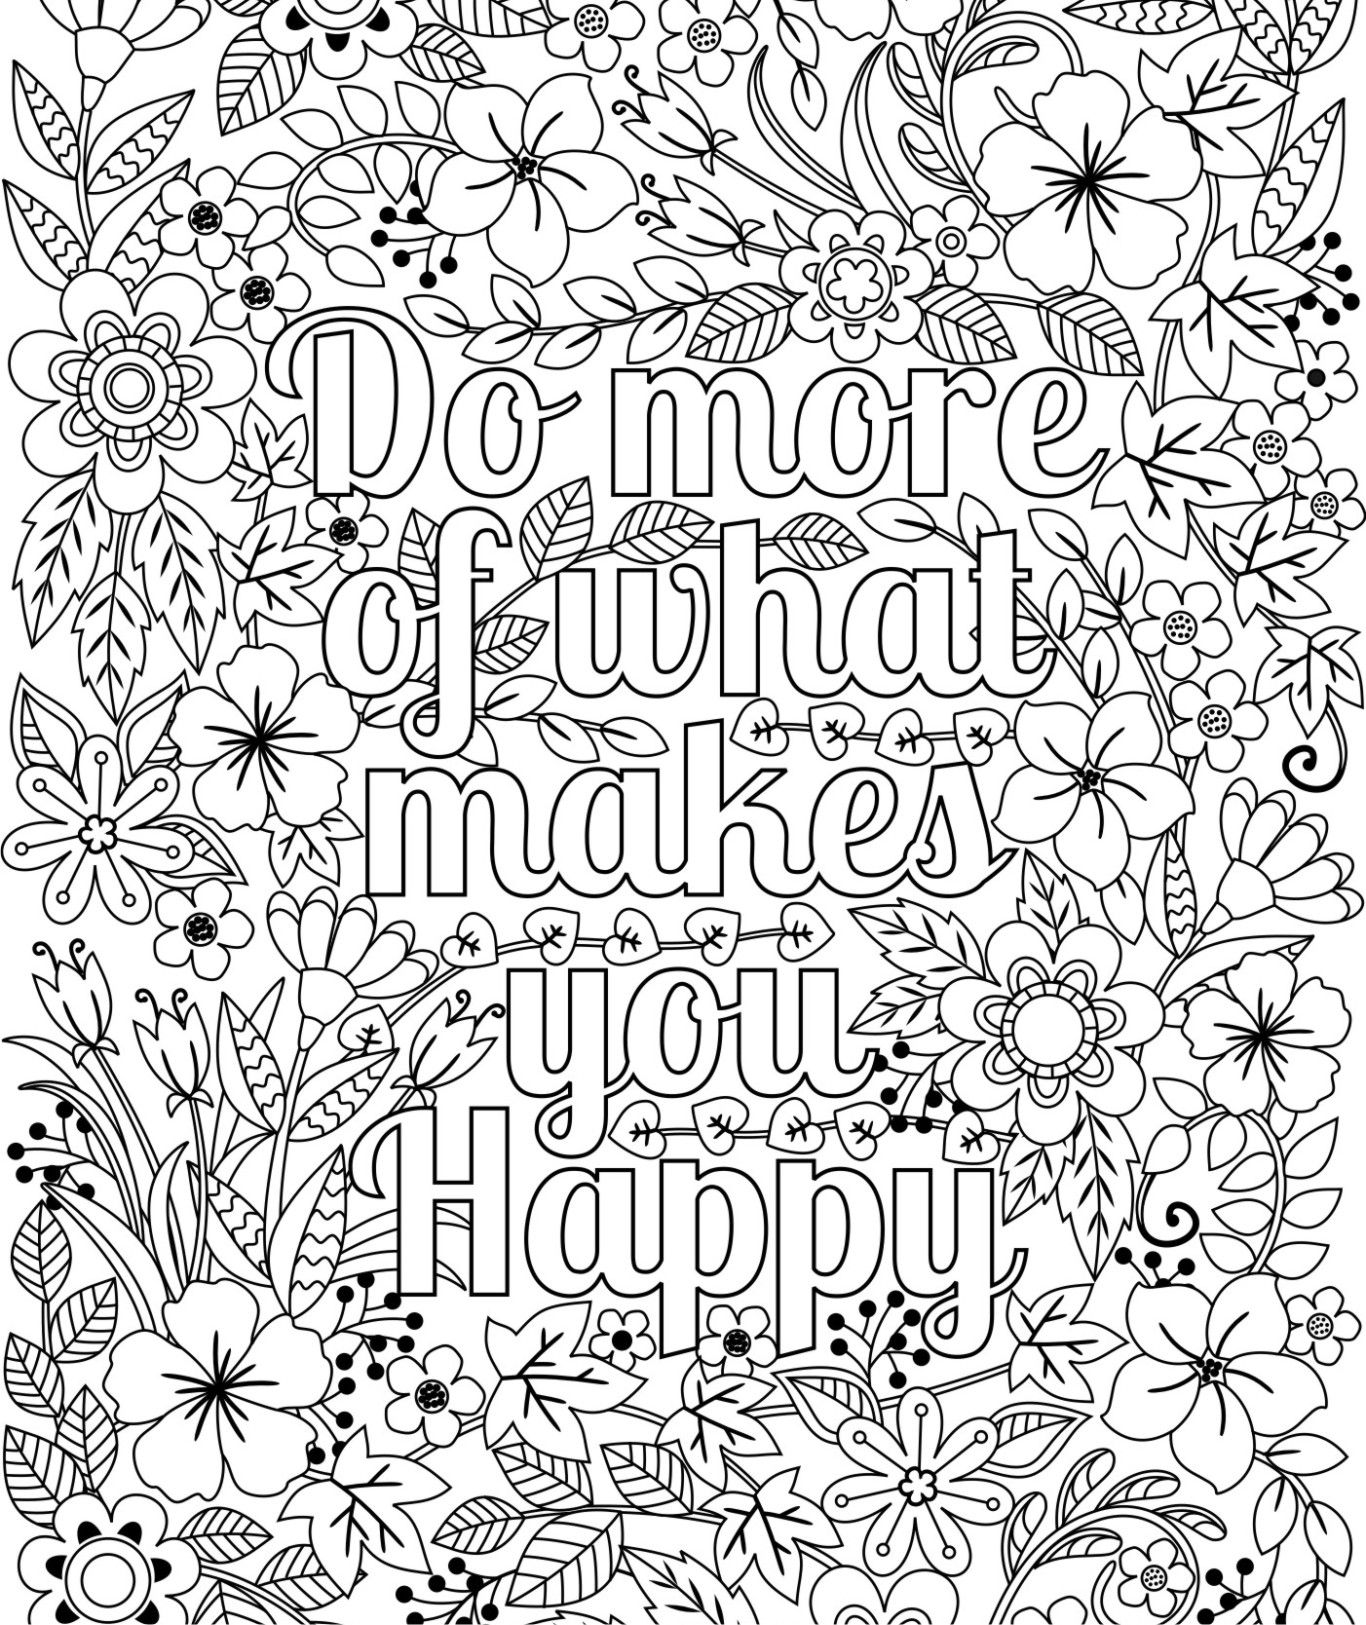 Do More of What Makes You Happy Coloring Page for Adults & Kids ...